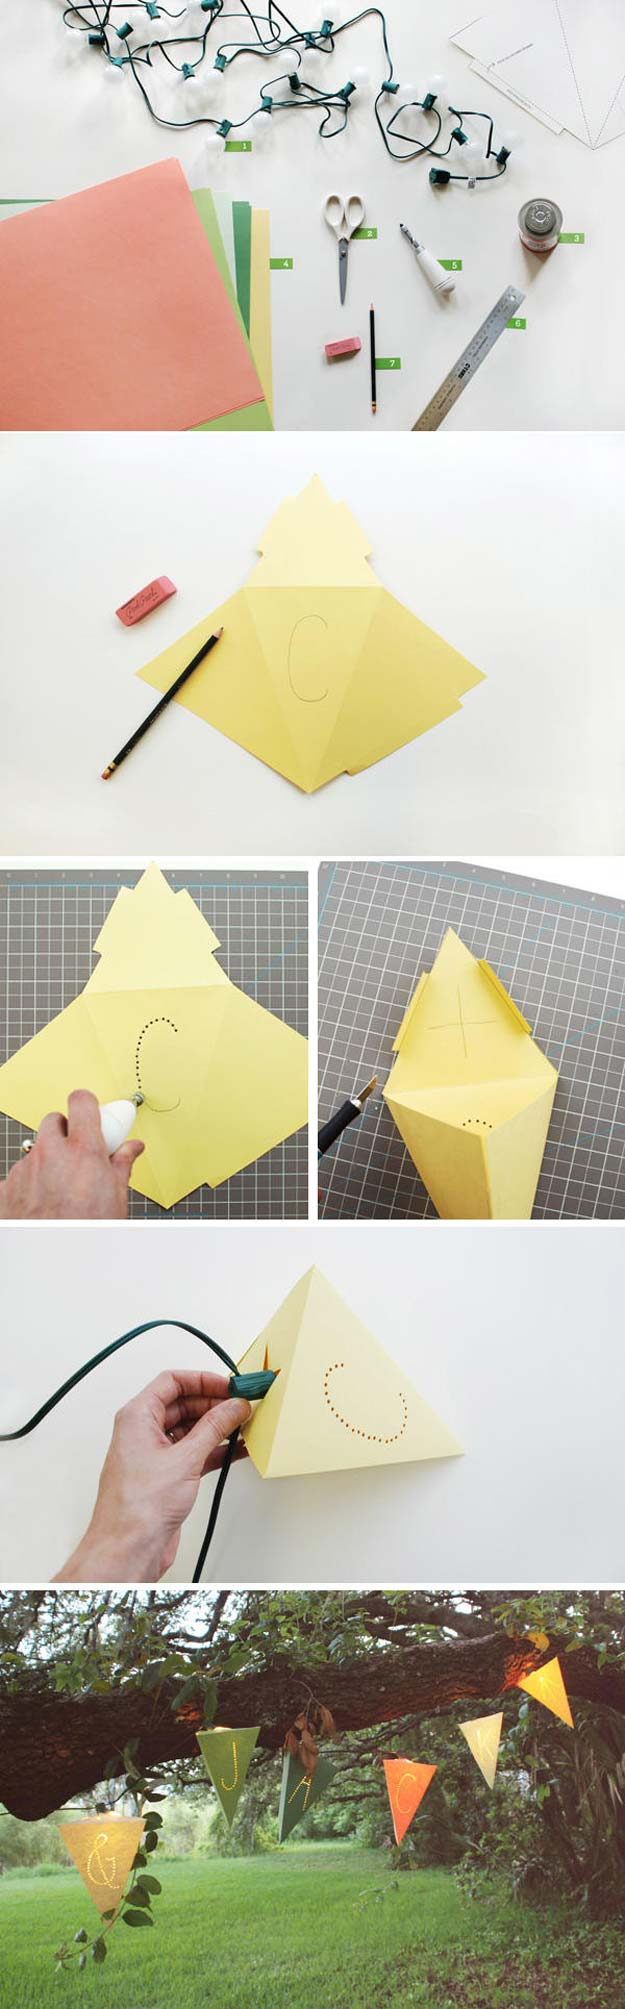 Cool Ways To Use Christmas Lights - DIY Lighted Paper Pennant Garland - Best Easy DIY Ideas for String Lights for Room Decoration, Home Decor and Creative DIY Bedroom Lighting - Creative Christmas Light Tutorials with Step by Step Instructions - Creative Crafts and DIY Projects for Teens, Teenagers and Adults #diyideas #stringlights #diydecor #teencrafts